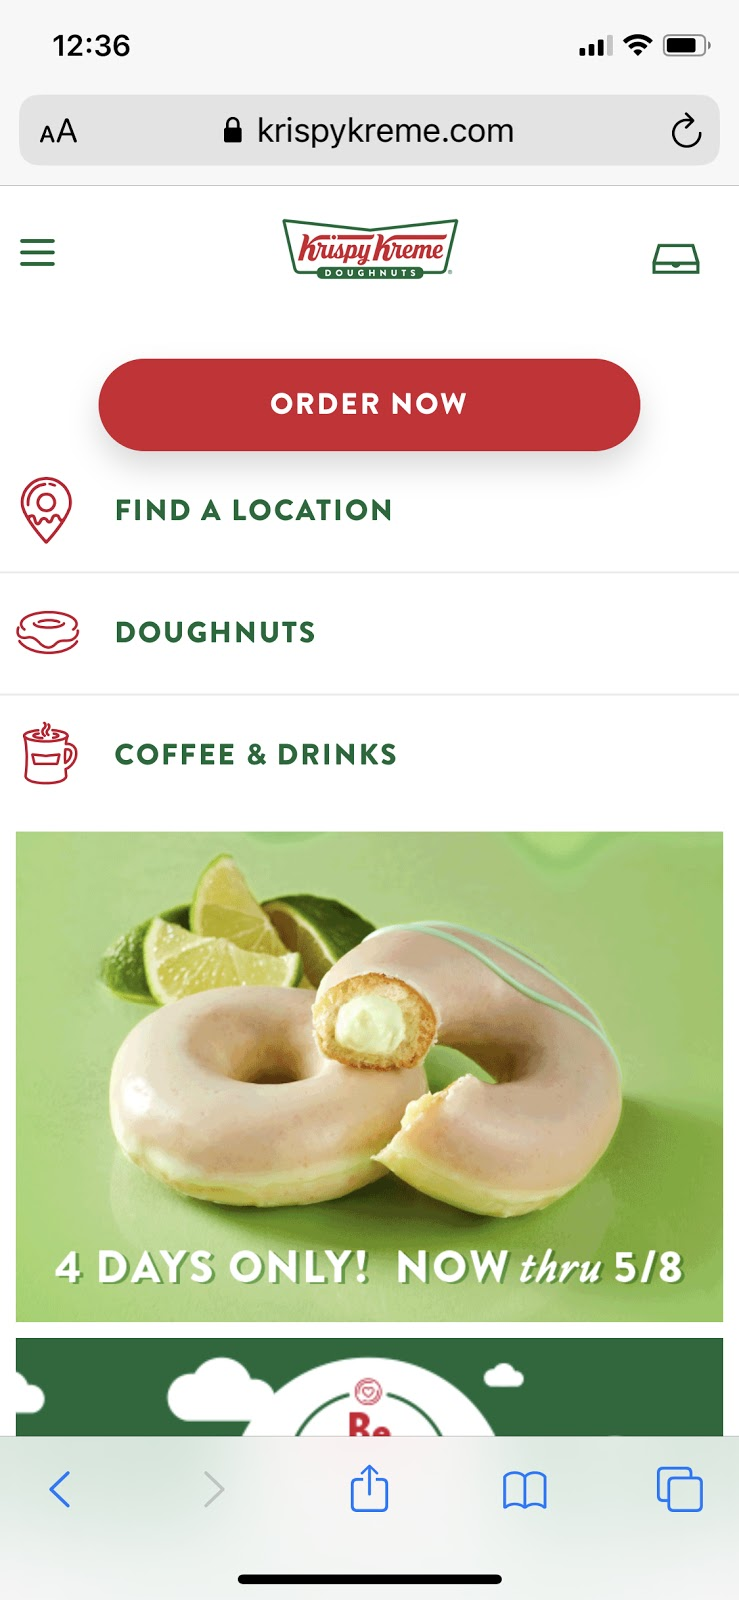 mobile version of krispy kreme website